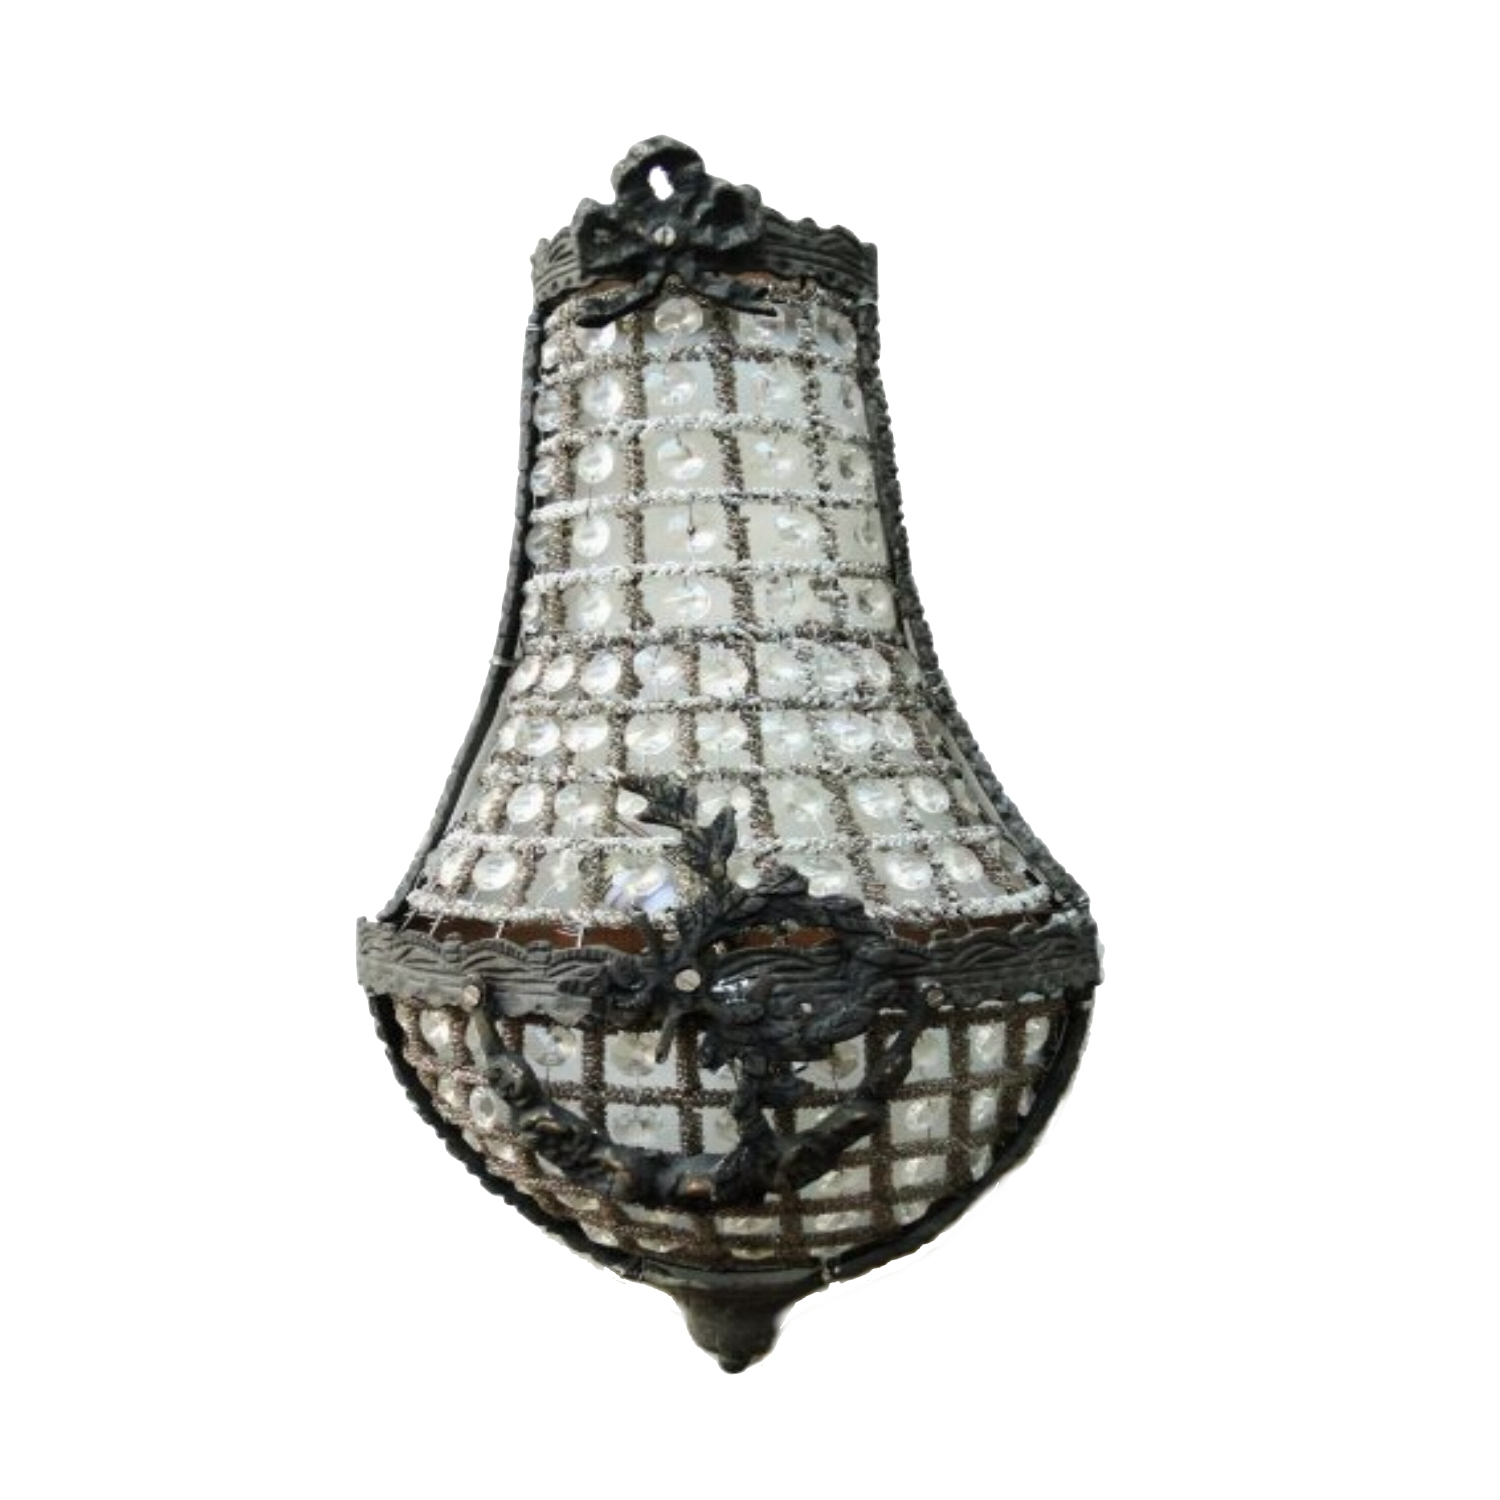 Antique Replica Wall Sconces : European Crystal Antique Replica SMALL Wall Sconce Light Fixture Chateau Mansion - The Kings Bay